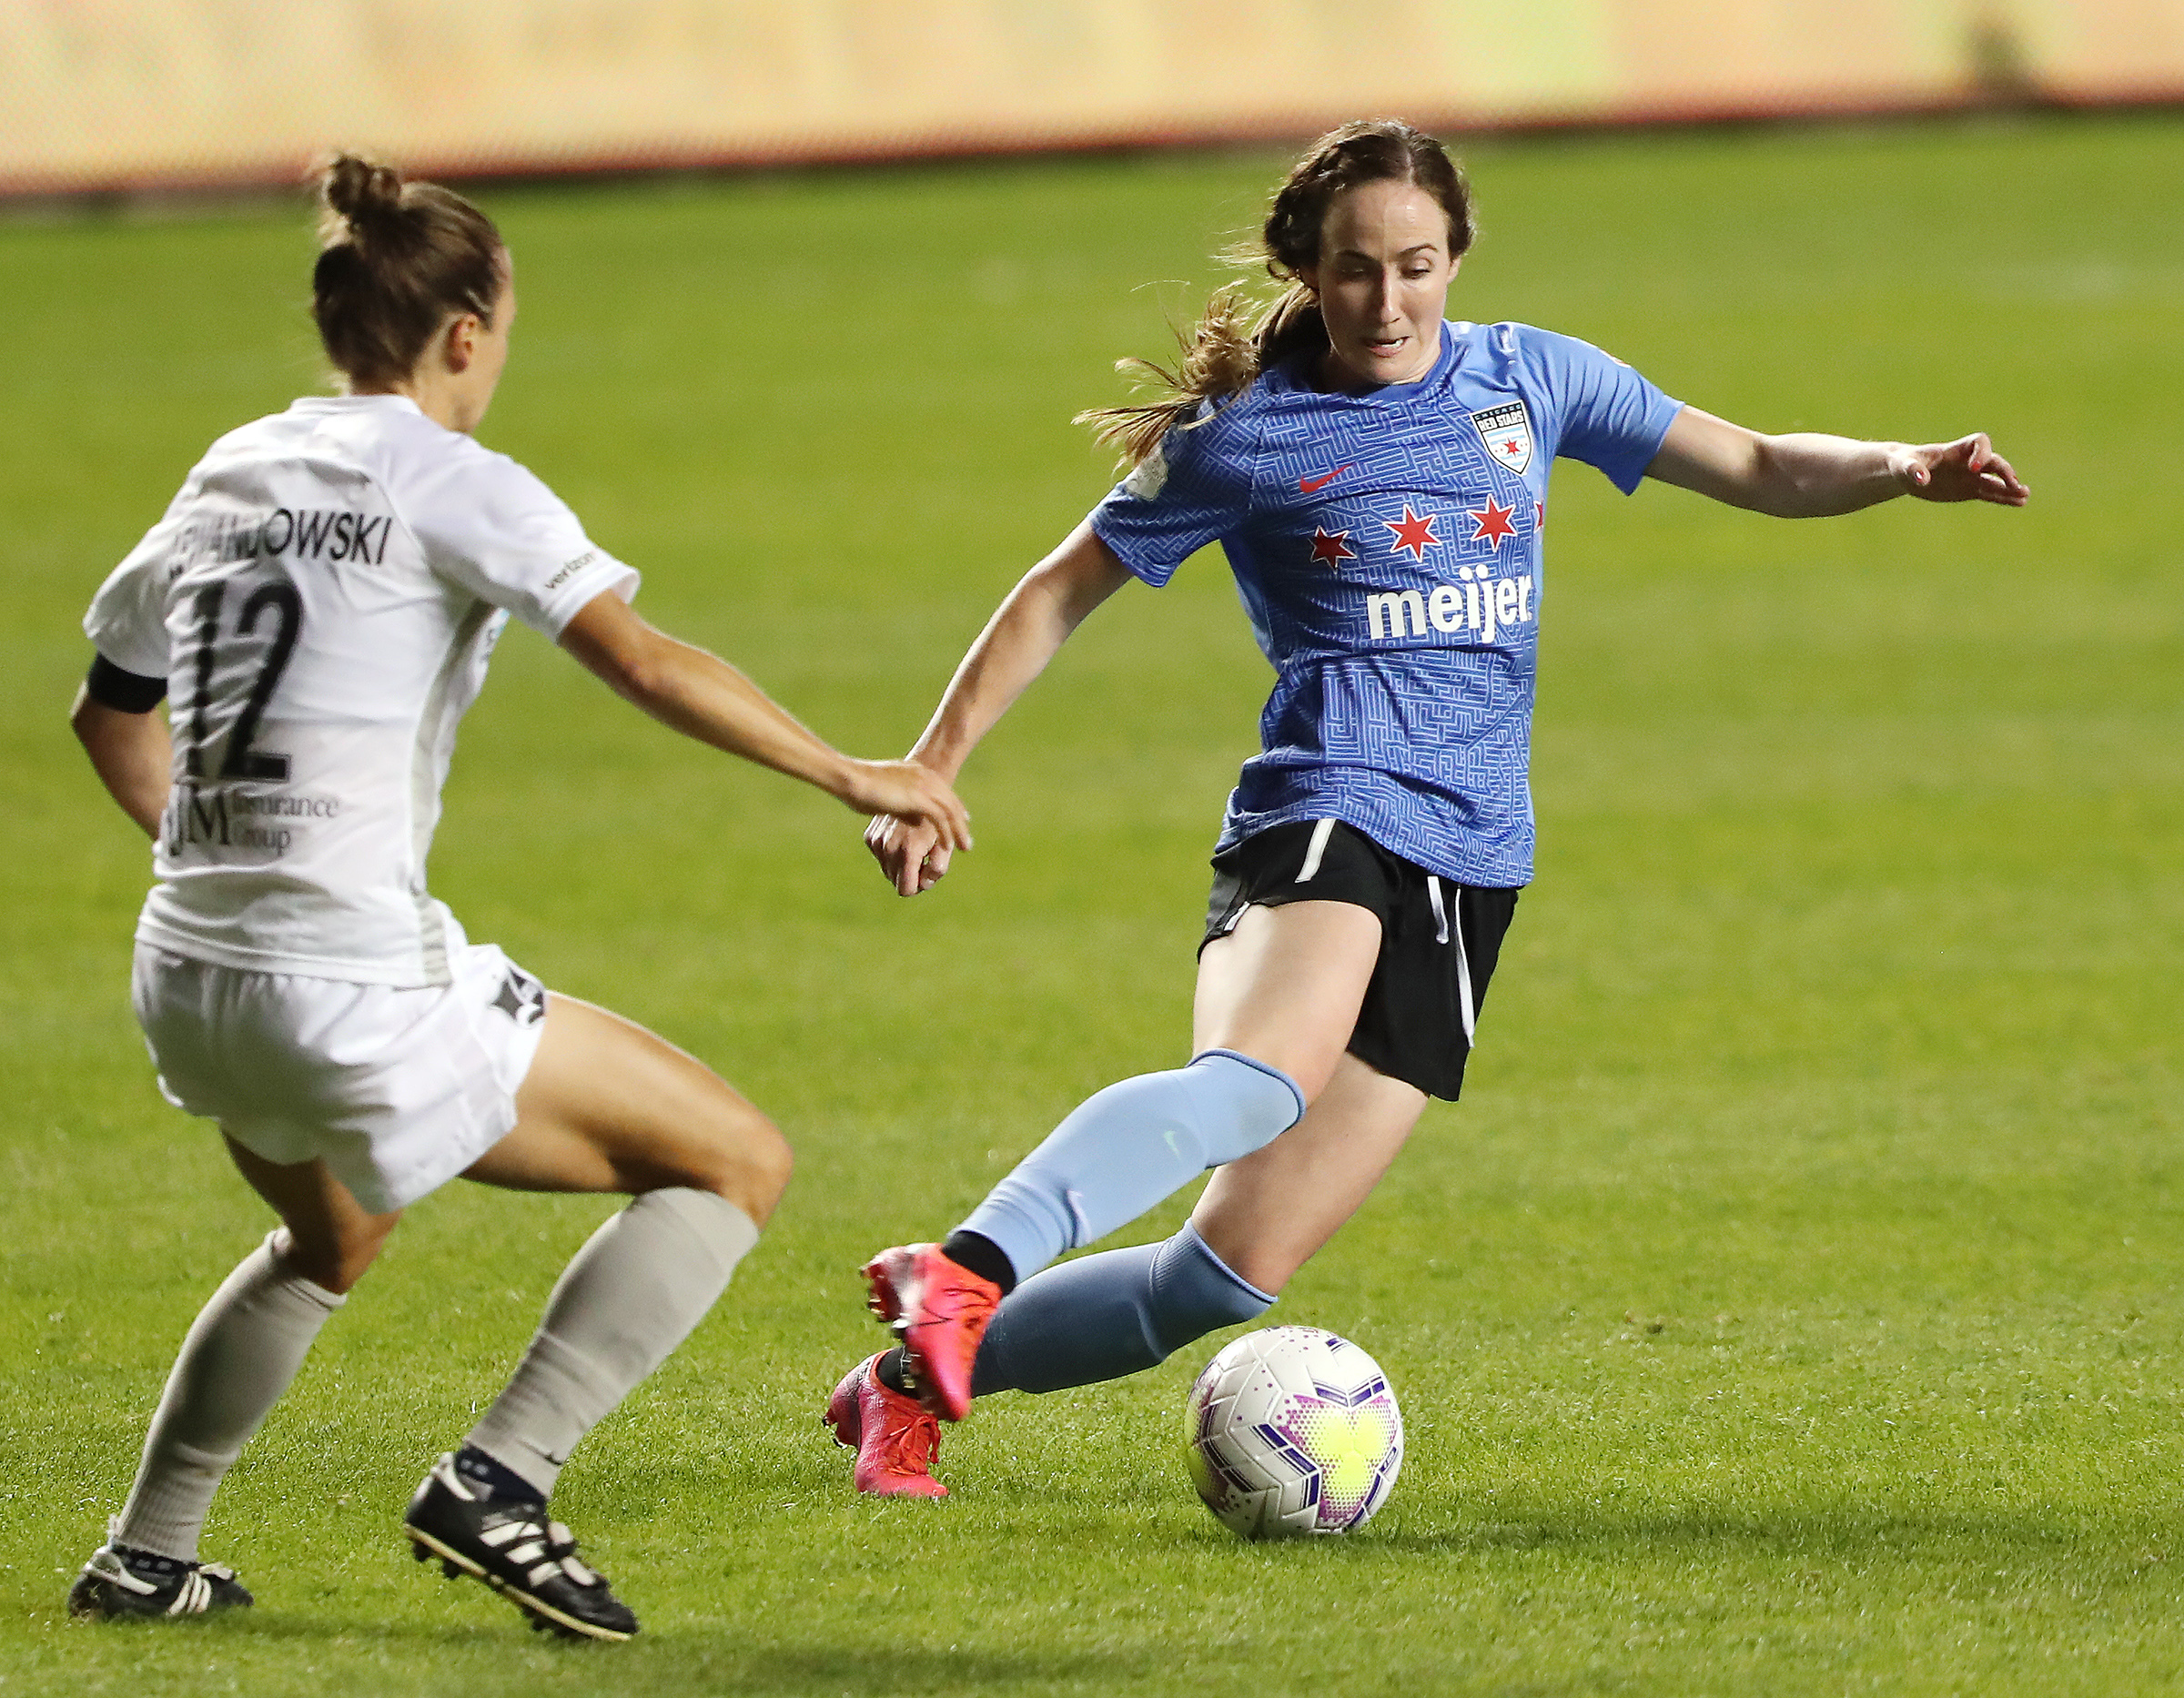 Chicago Red Stars midfielder Michele Vasconcelos (7) makes a move to avoid Sky Blue FC defender Gina Lewandowski (12) as Sky Blue FC and Chicago Red Stars play in the semifinals of the NWSL Challenge Cup at Rio Tinto Stadium in Sandy on Wednesday, July 22, 2020. Chicago won 3-2.